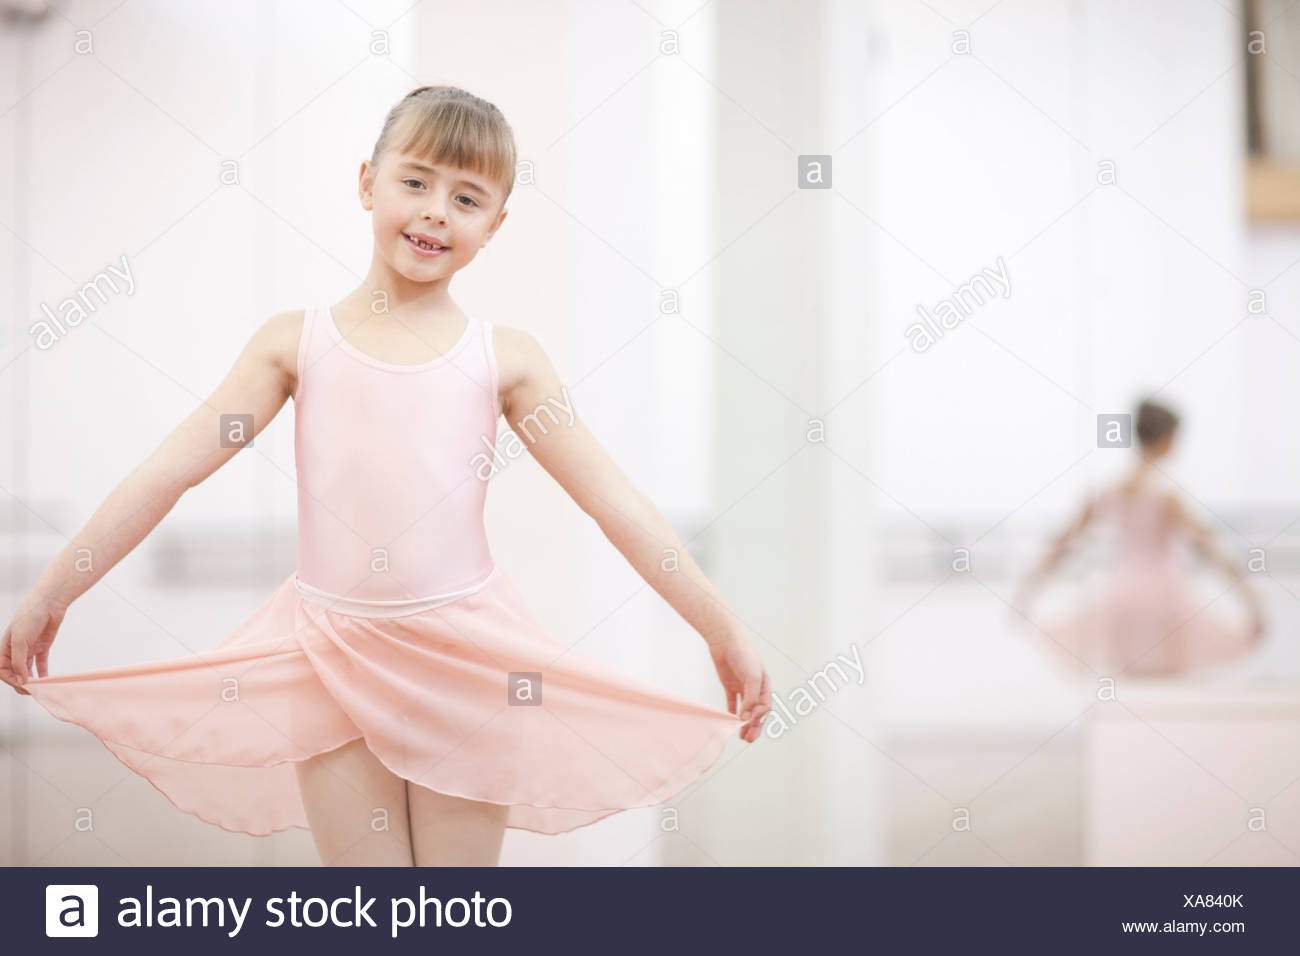 Portrait of a young ballerina holding skirt - Stock Image